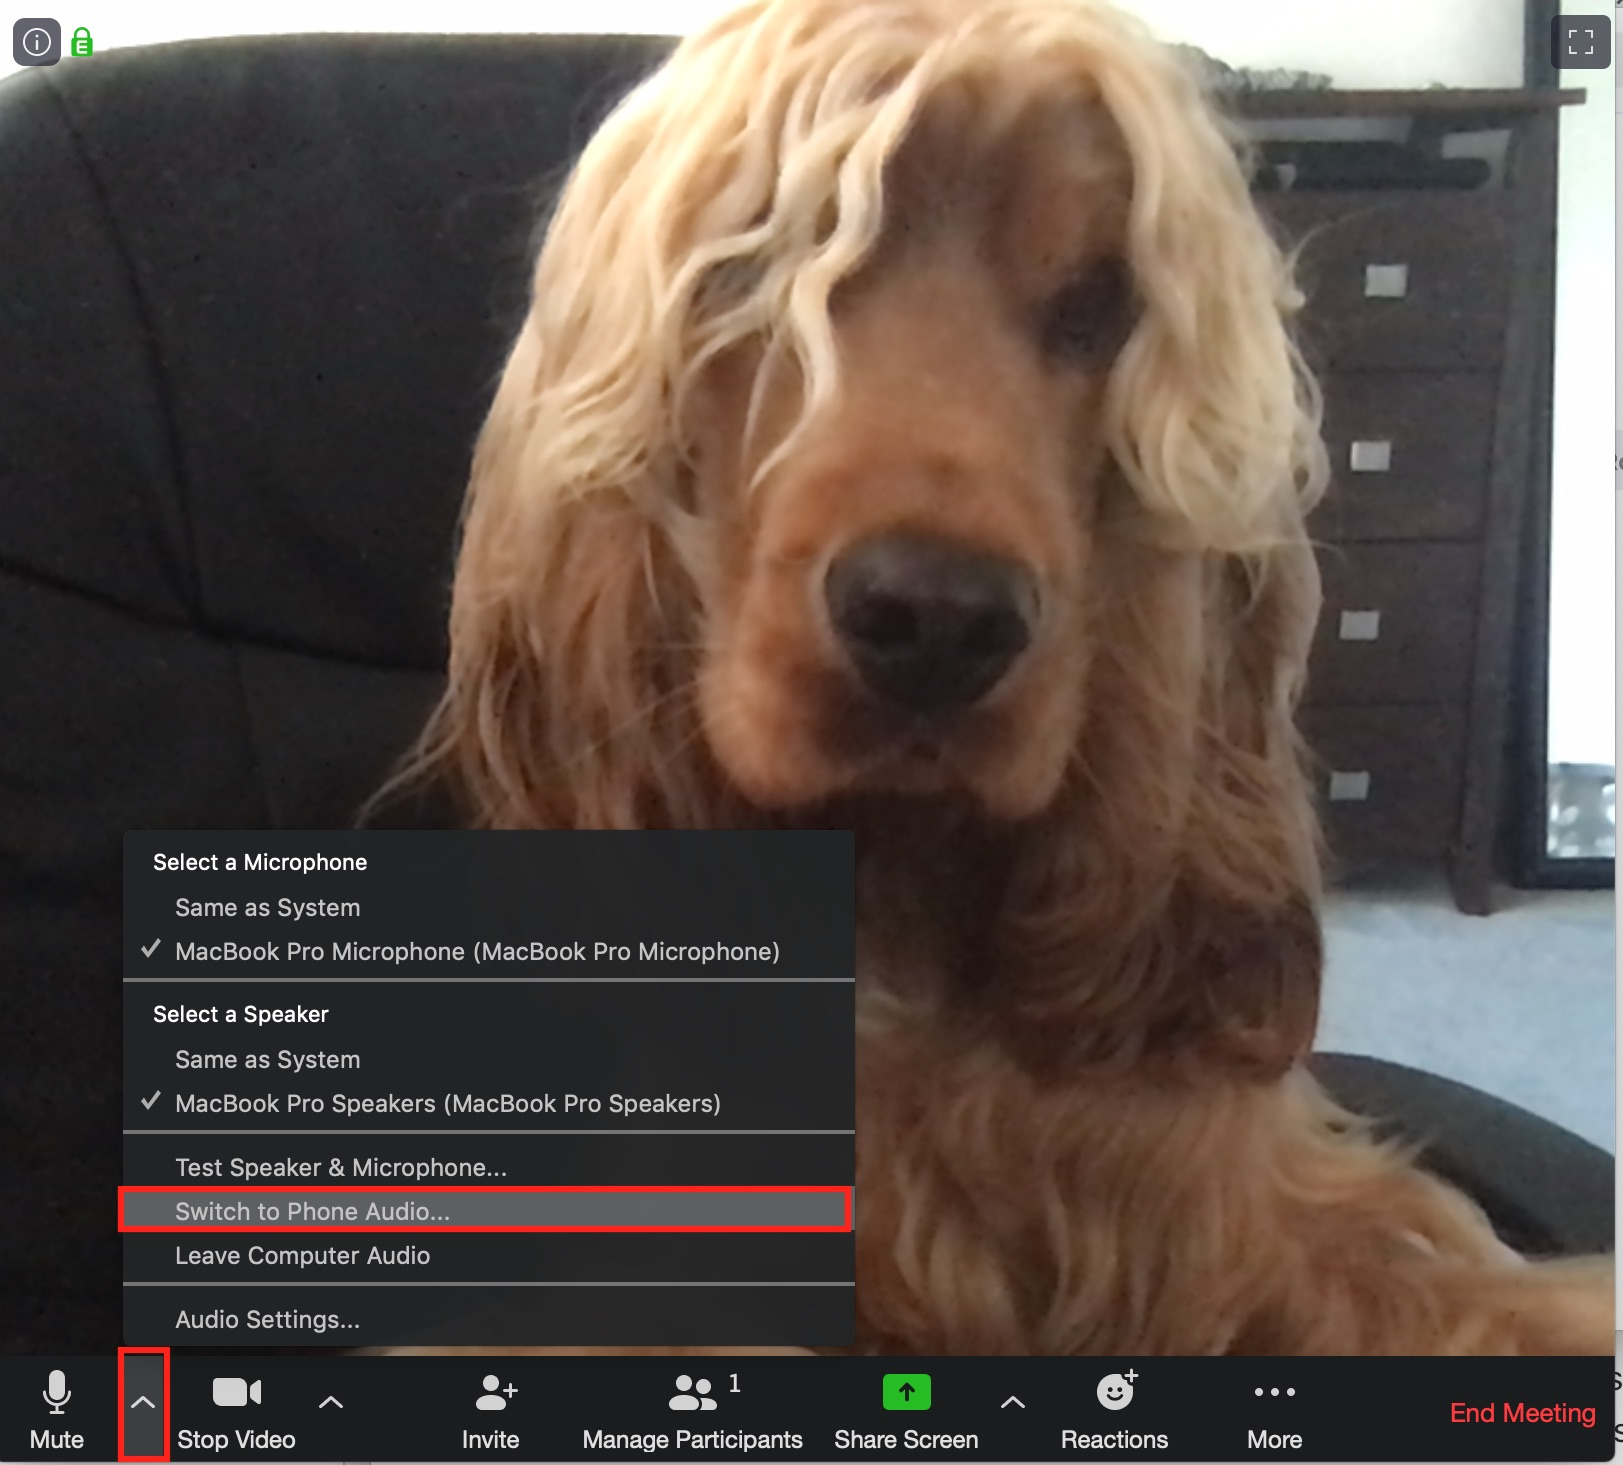 Dog on zoom call - instructions for switch to phone audio